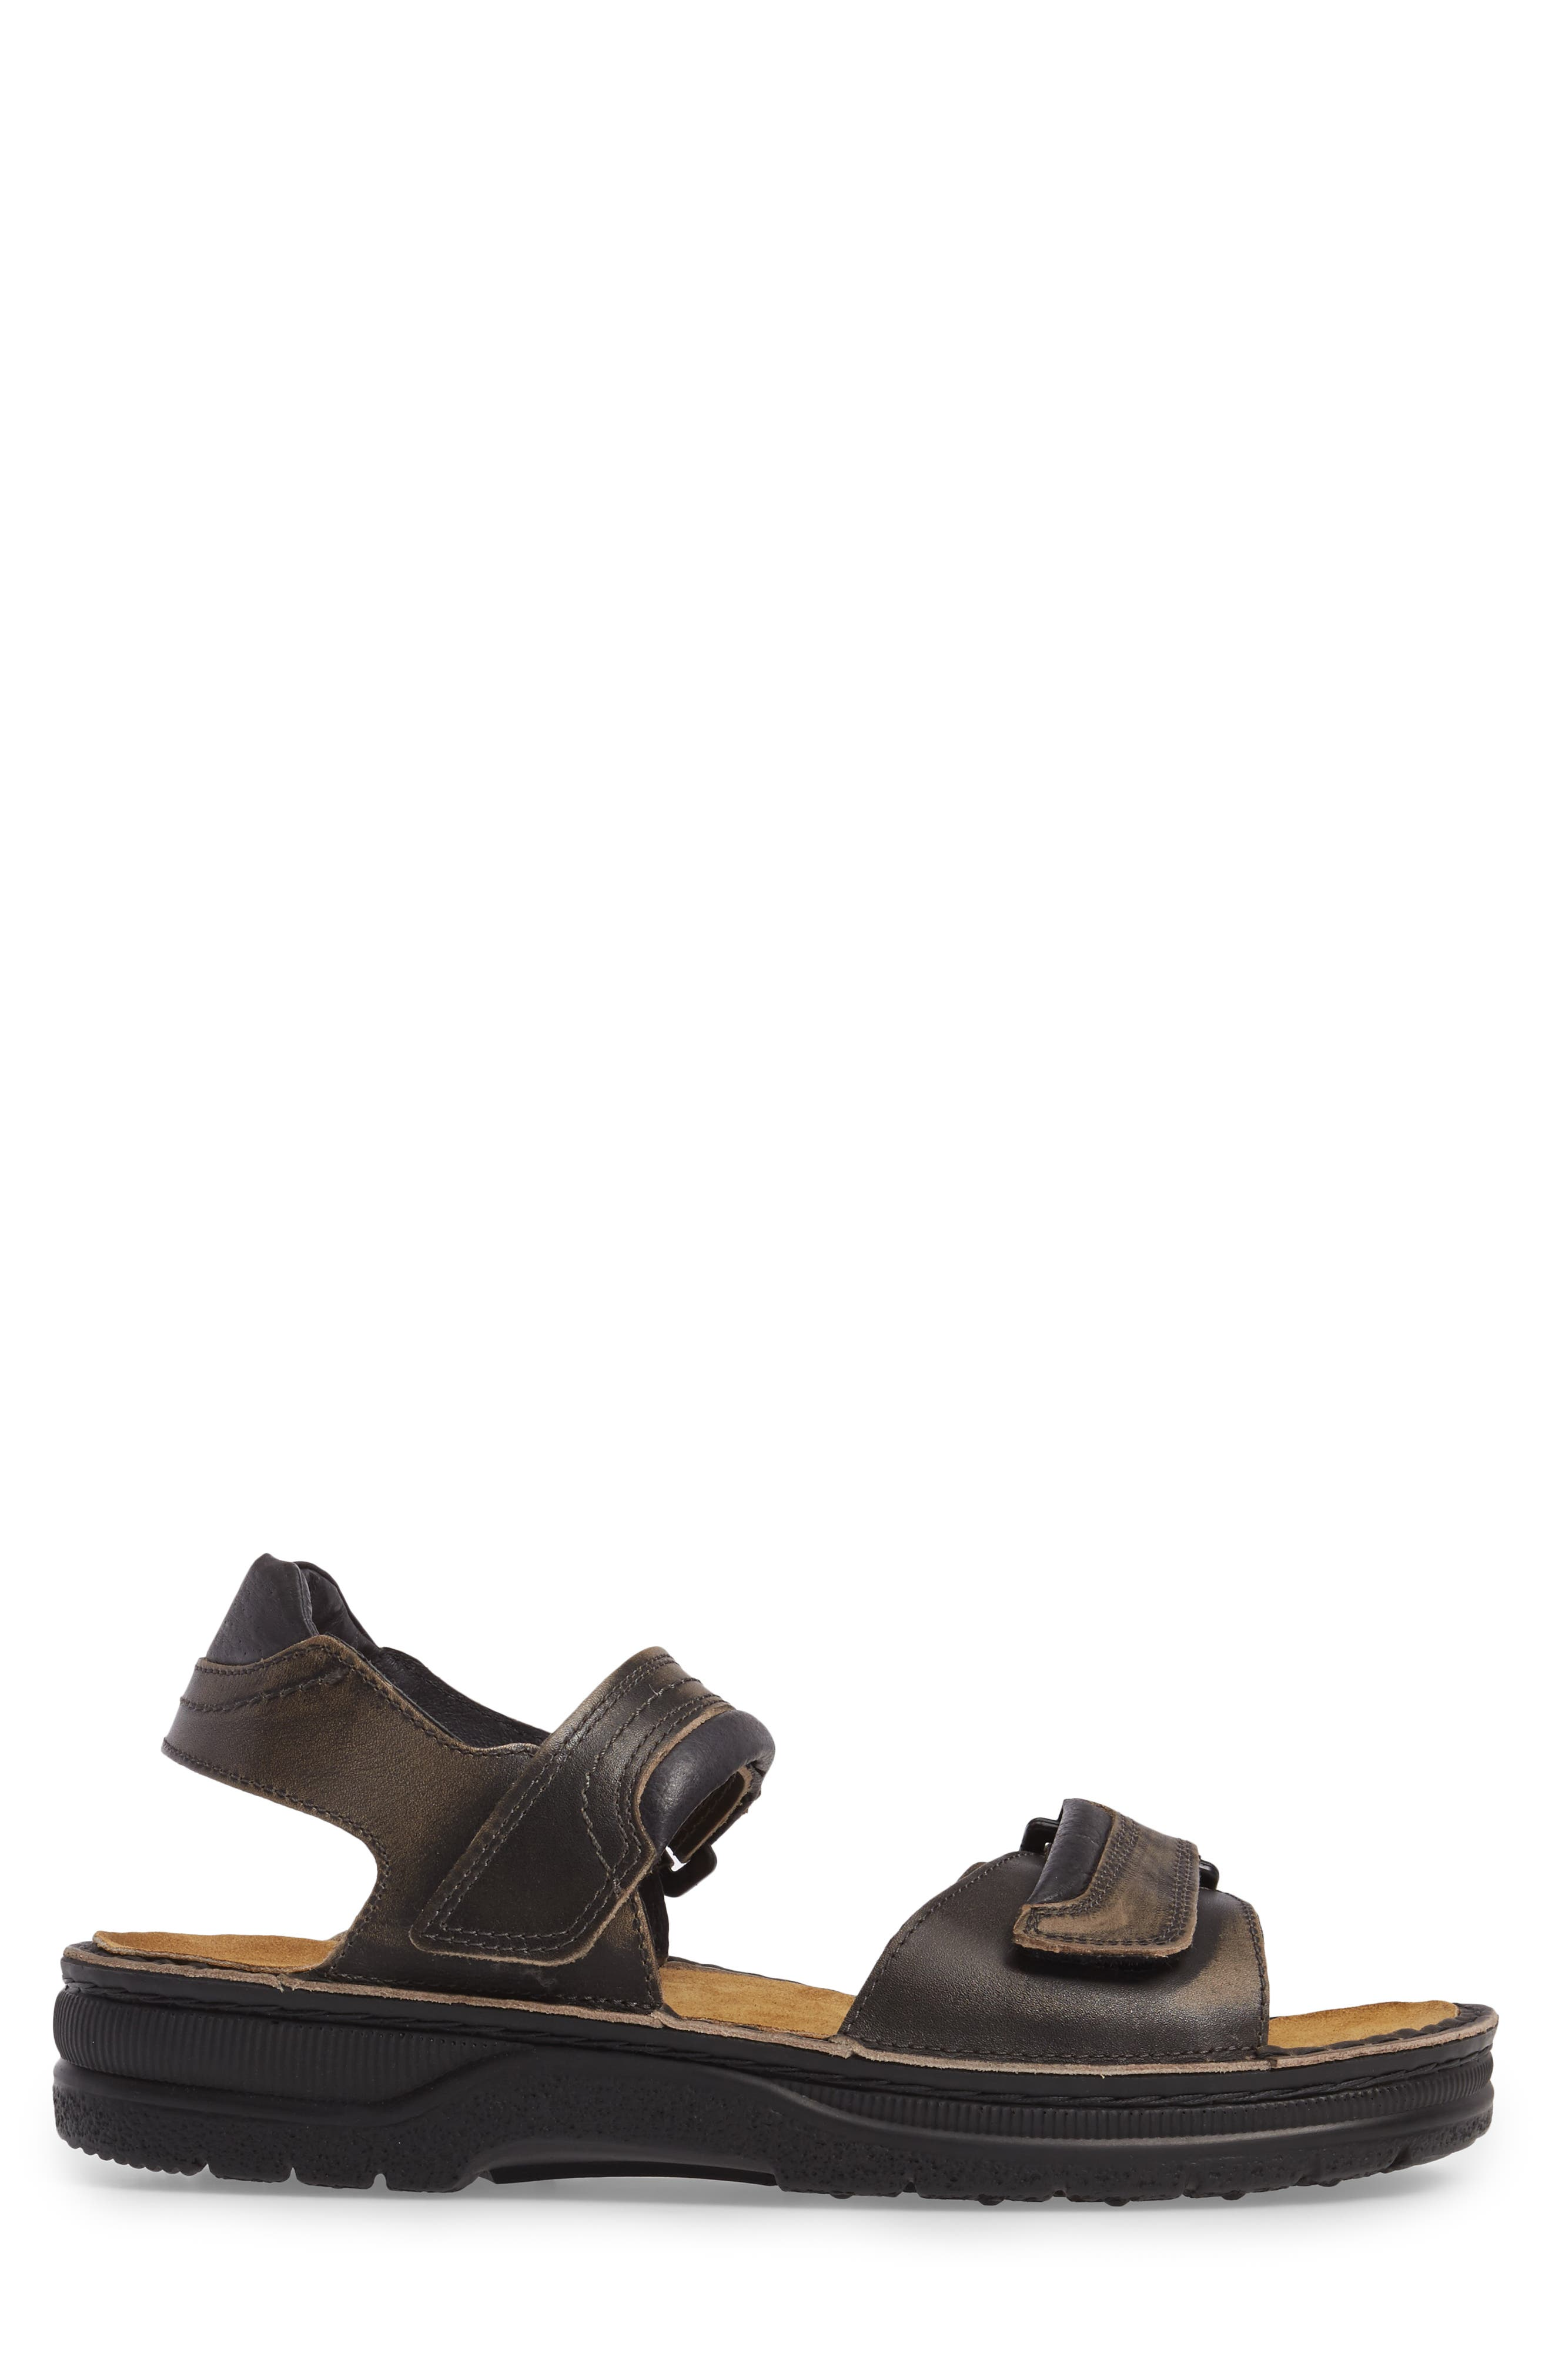 Alternate Image 3  - Naot Lappland Sandal (Men)